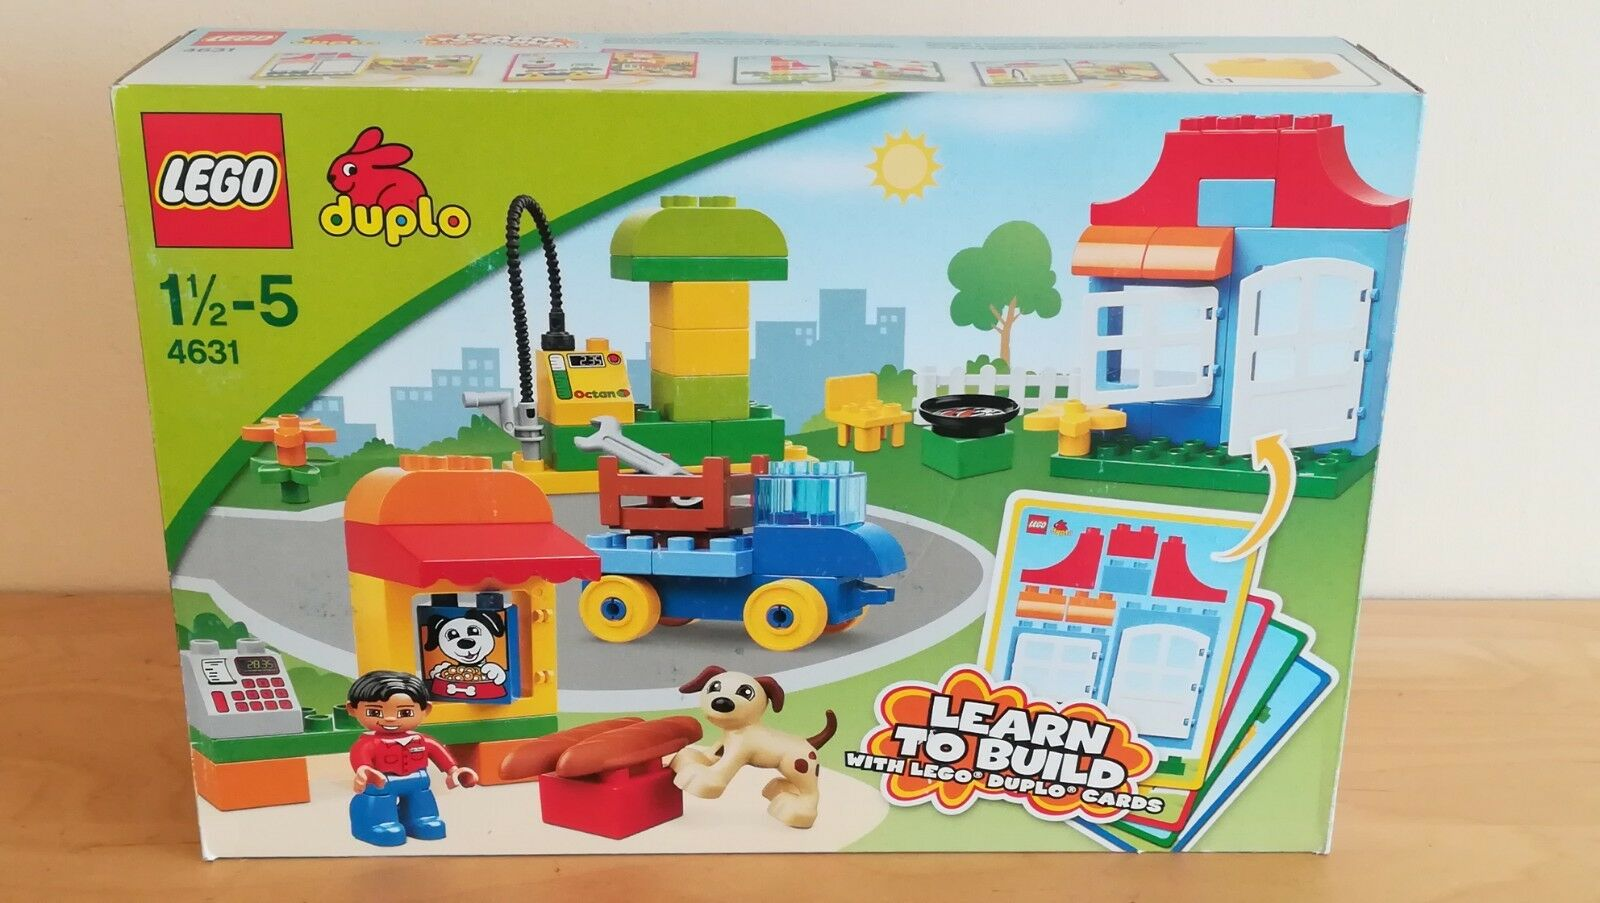 LEGO Duplo 4631 MY FIRST BUILD - Brand new & sealed box with minor shelfwear